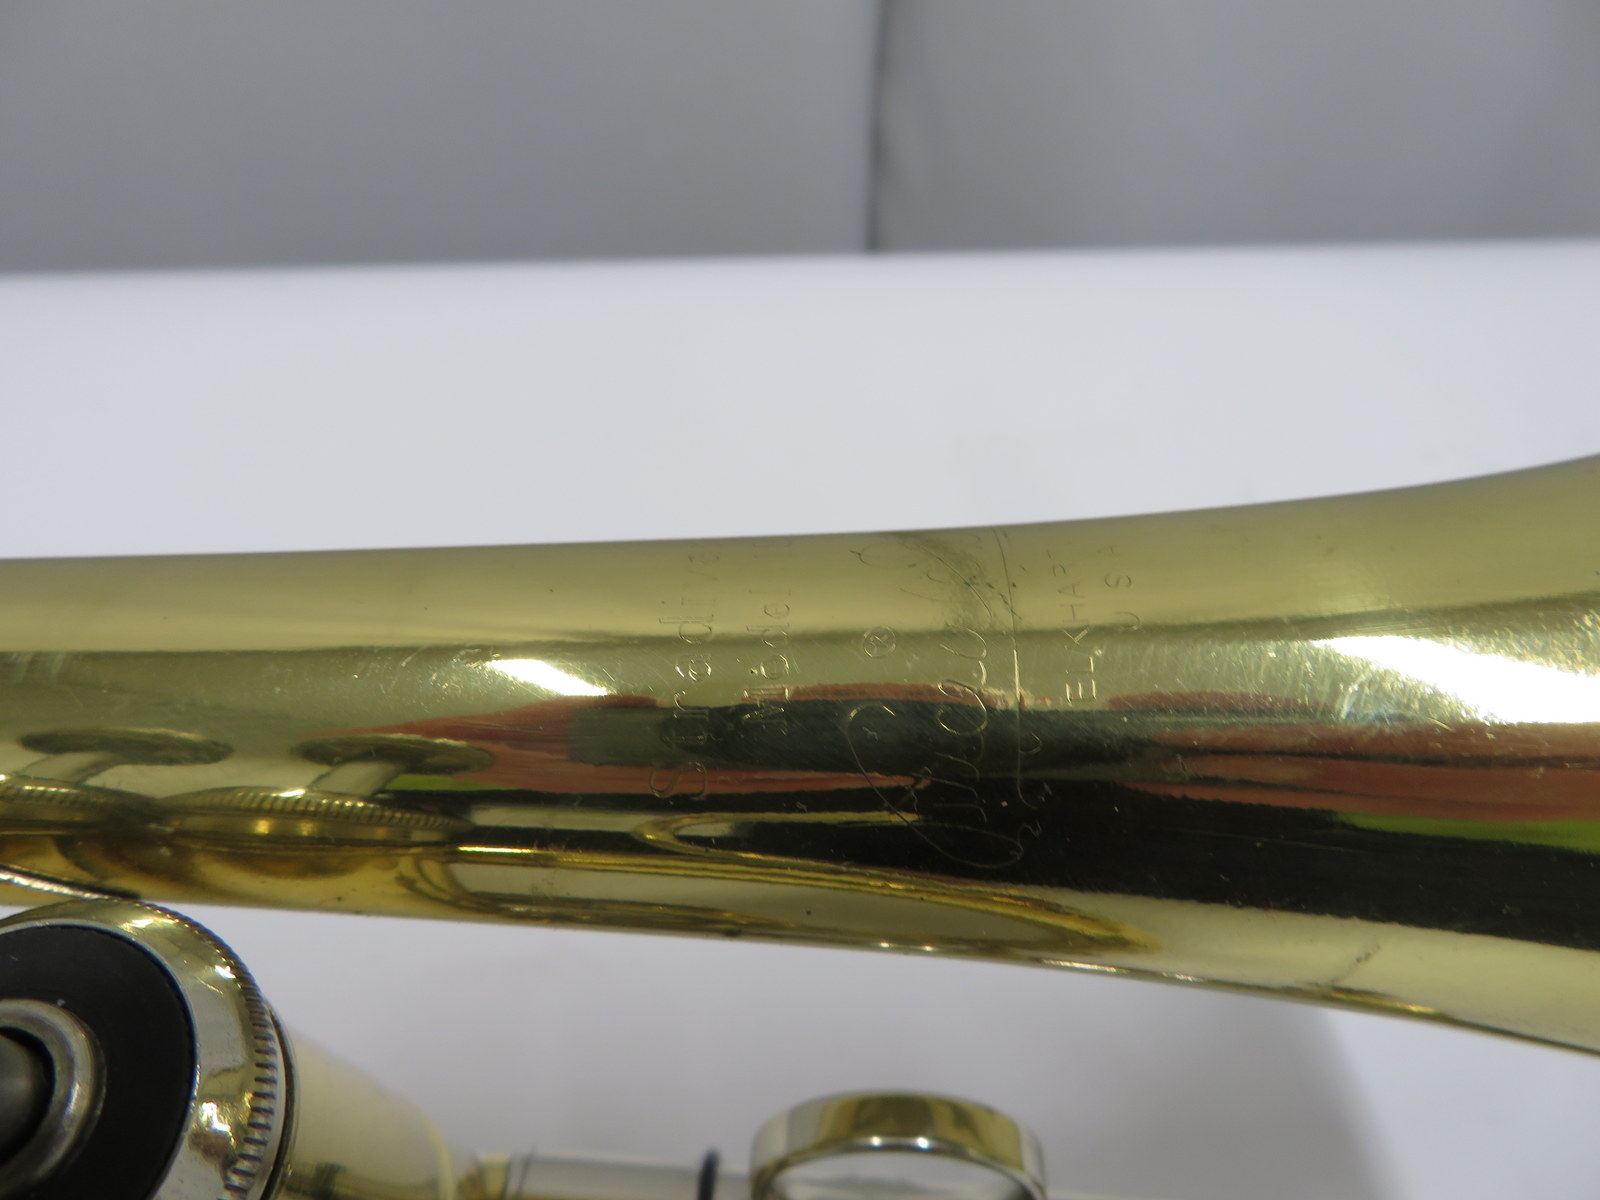 Lot 28 - Bach Stradivarius model 184 cornet with case. Serial number: 509182.